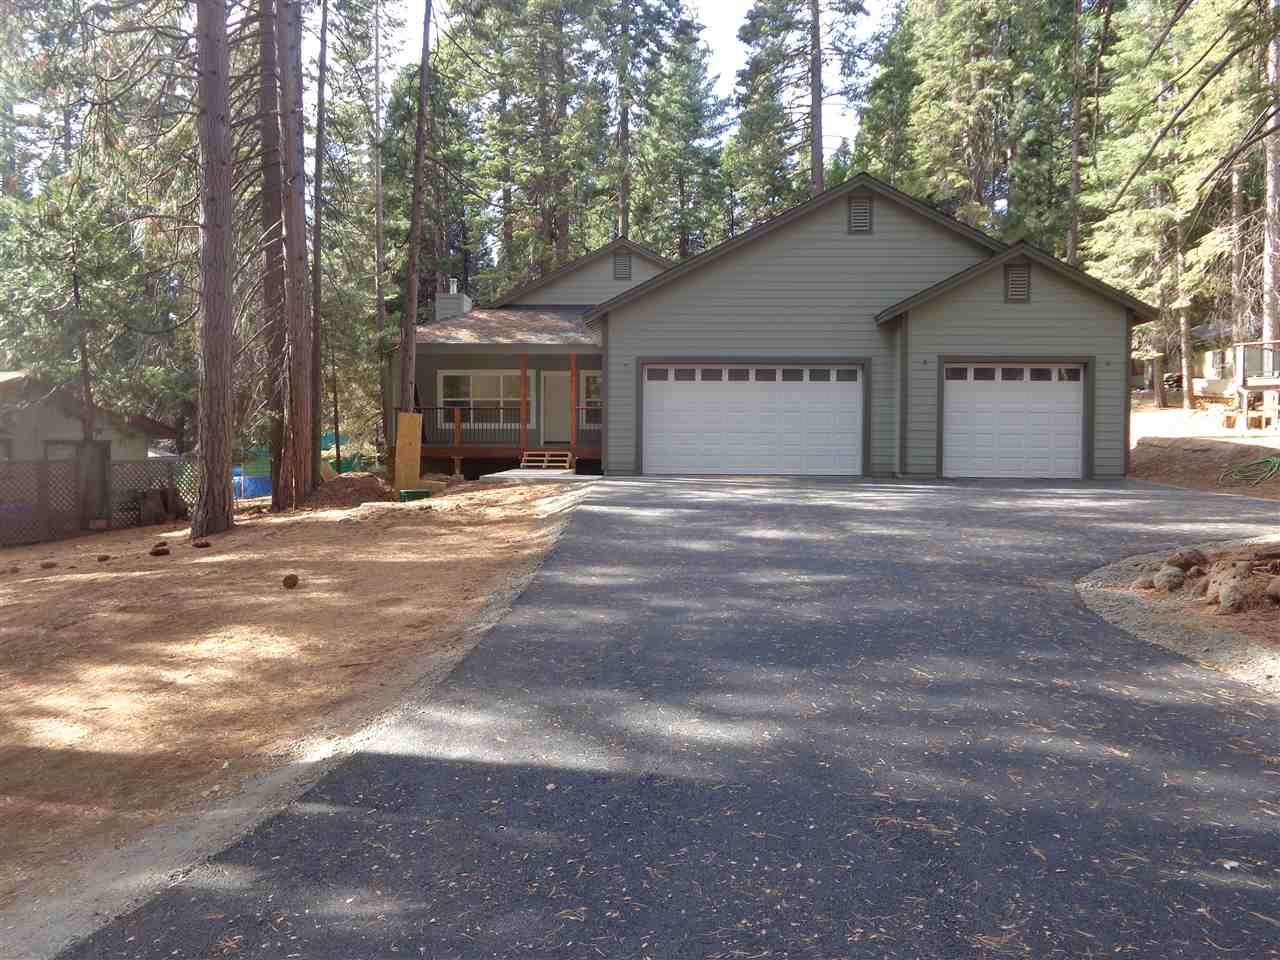 Single Family Home for Active at 711 Conifer Trail 711 Conifer Trail Lake Almanor, California 96137 United States